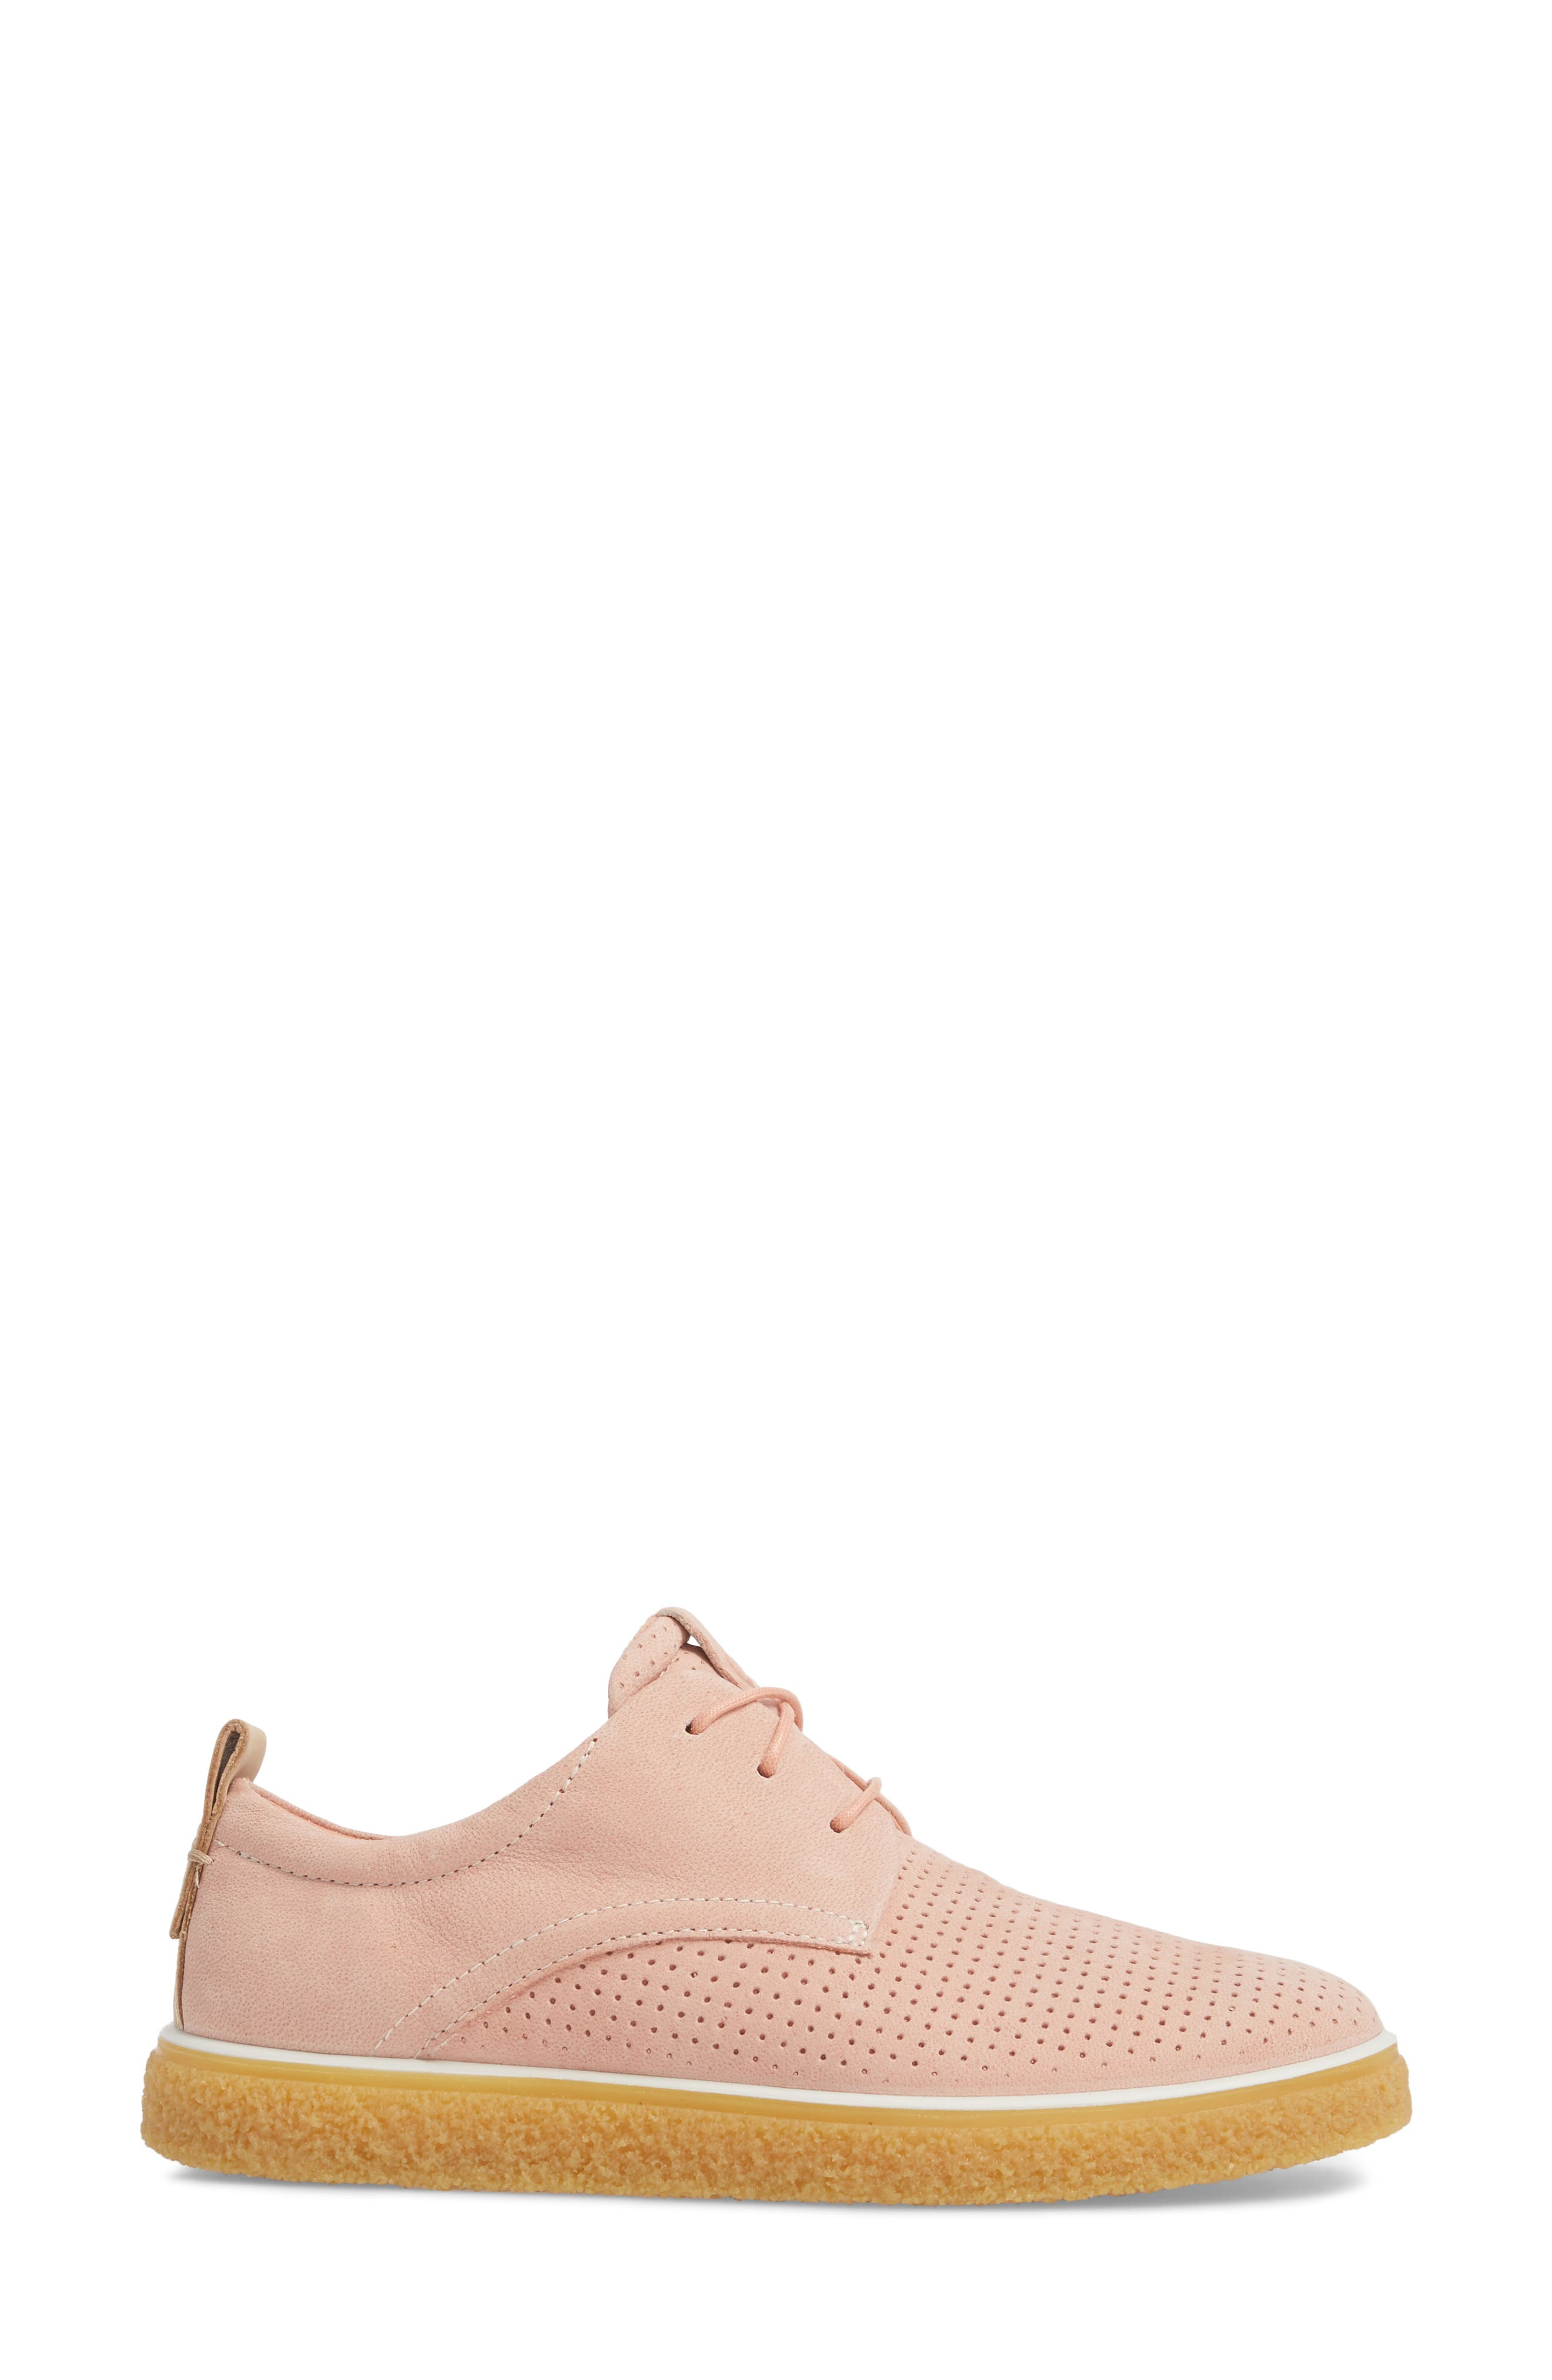 Crepetray Sneaker,                             Alternate thumbnail 3, color,                             Muted Clay Powder Leather